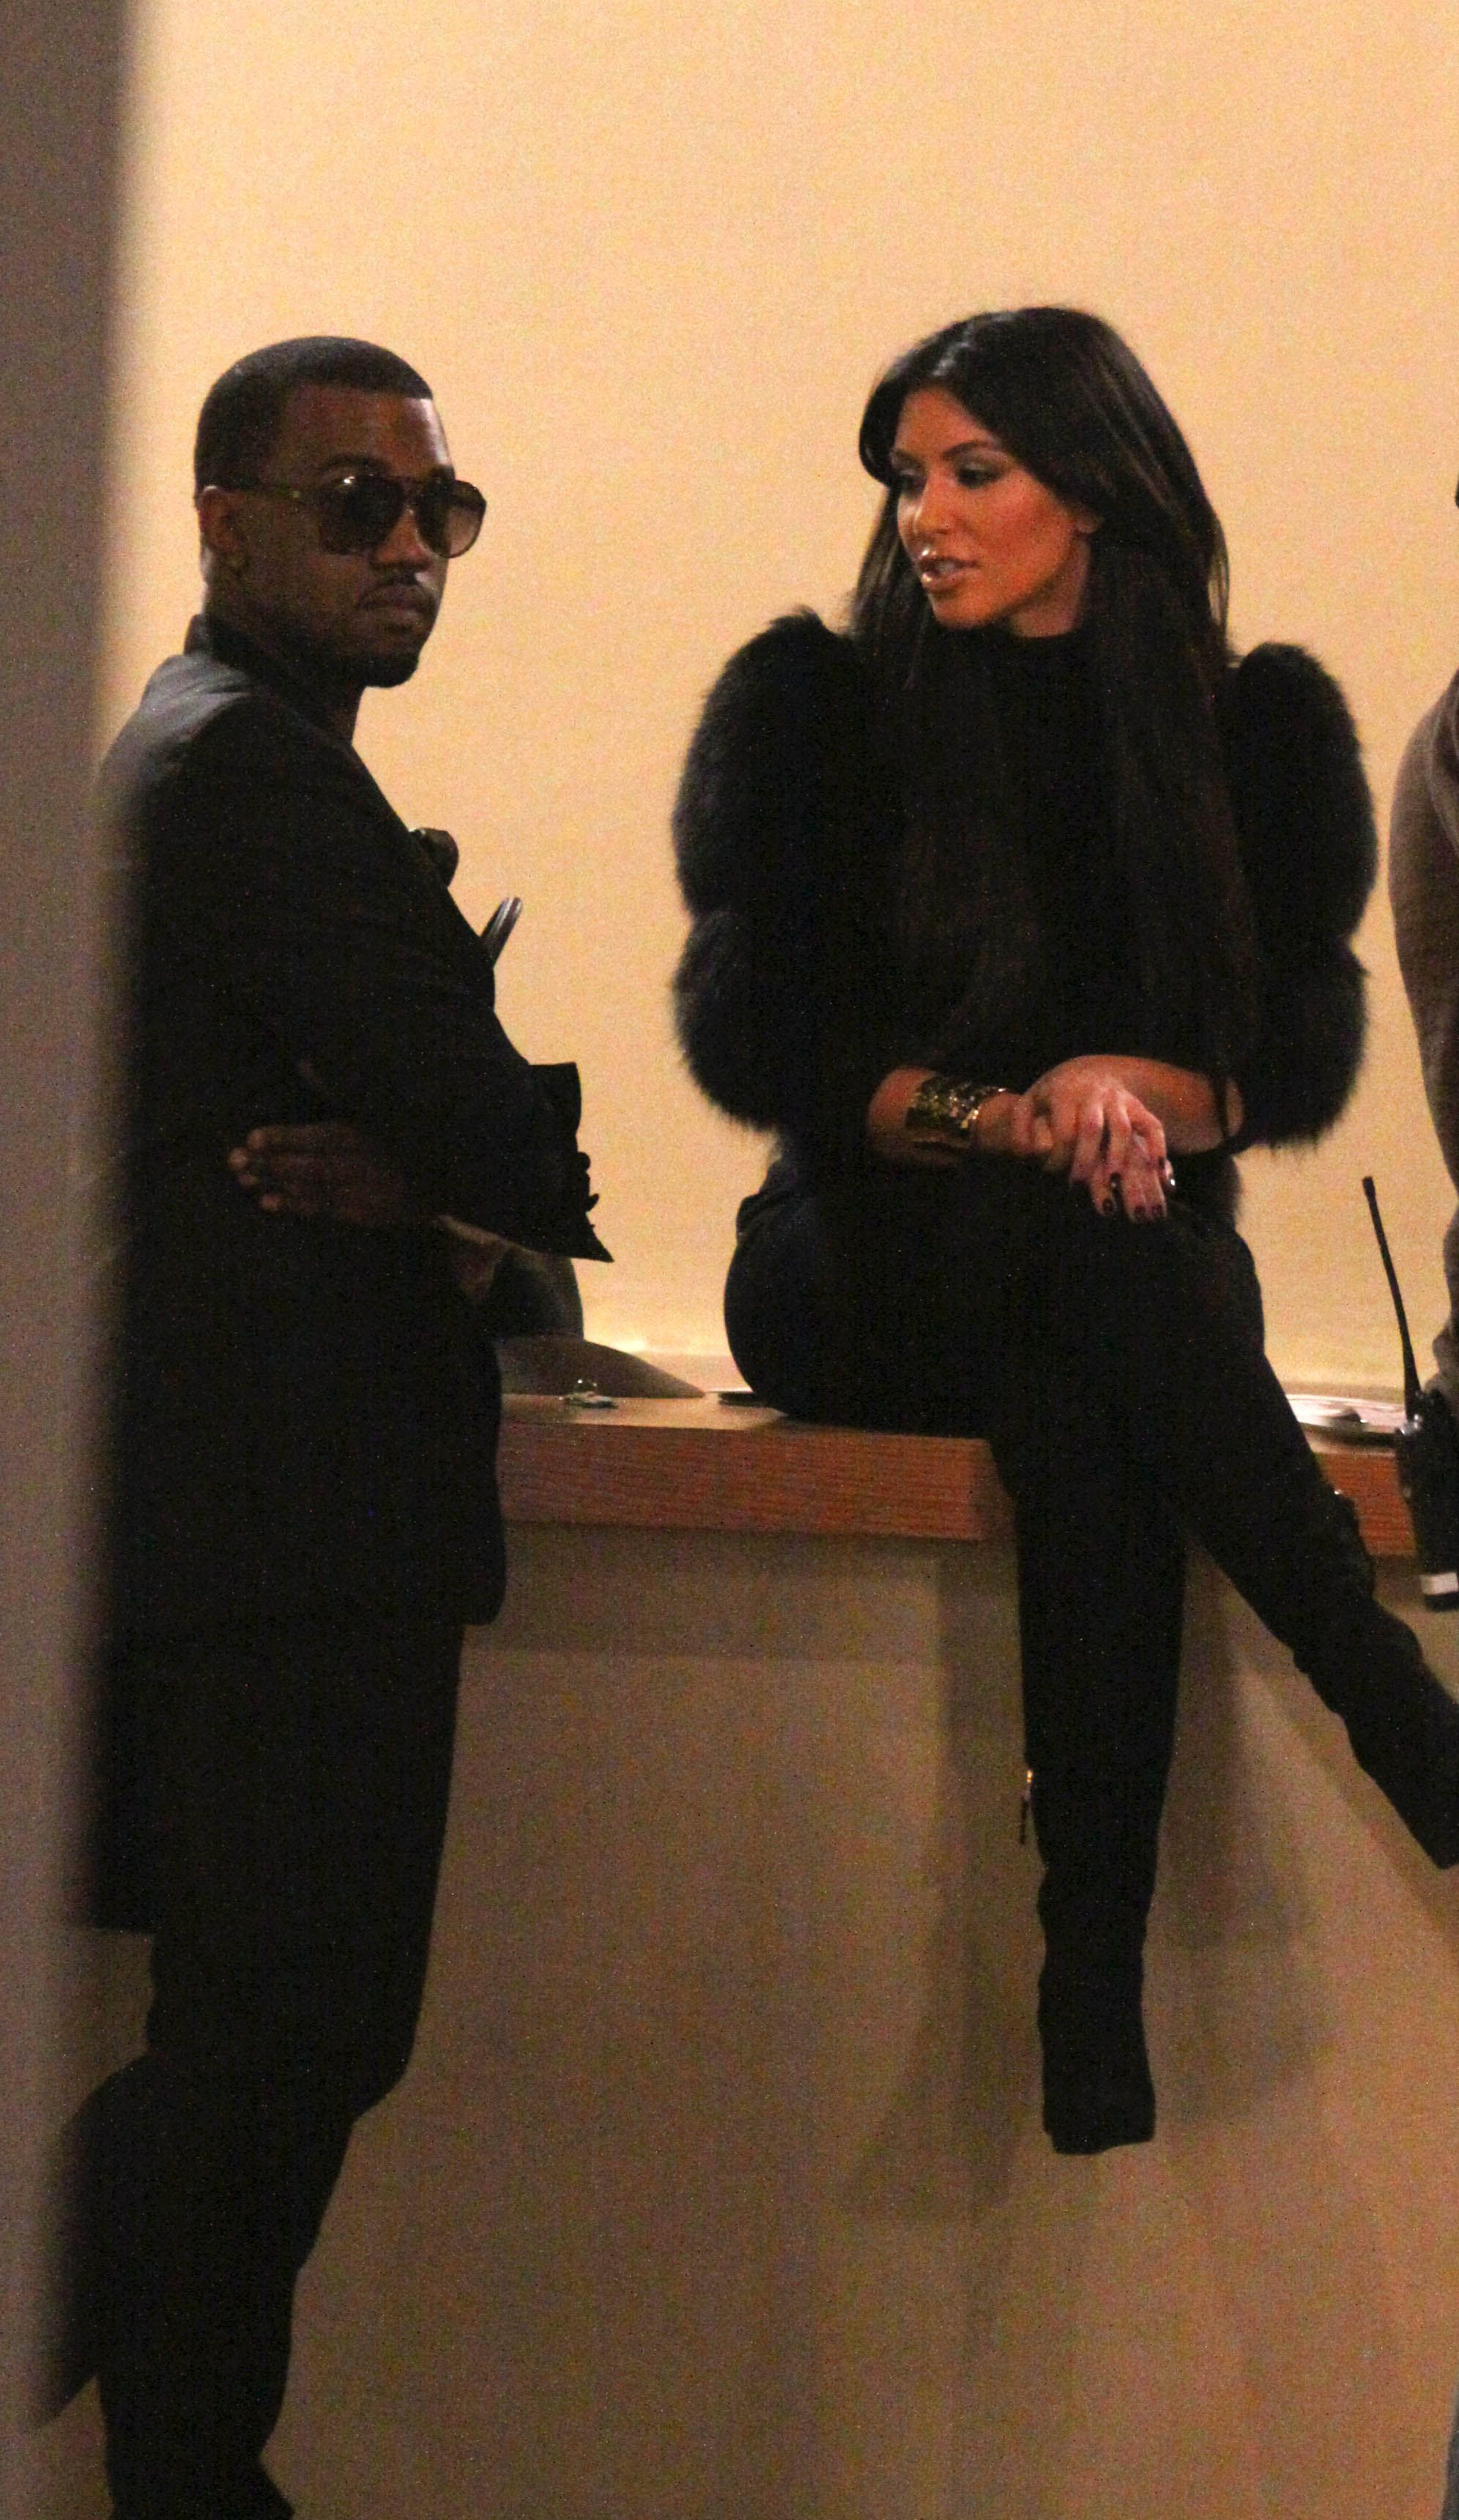 Kanye West Kim Kardashian Are Officially Dating Details Kim And Kanye Kanye West And Kim Kim Kardashian Kanye West